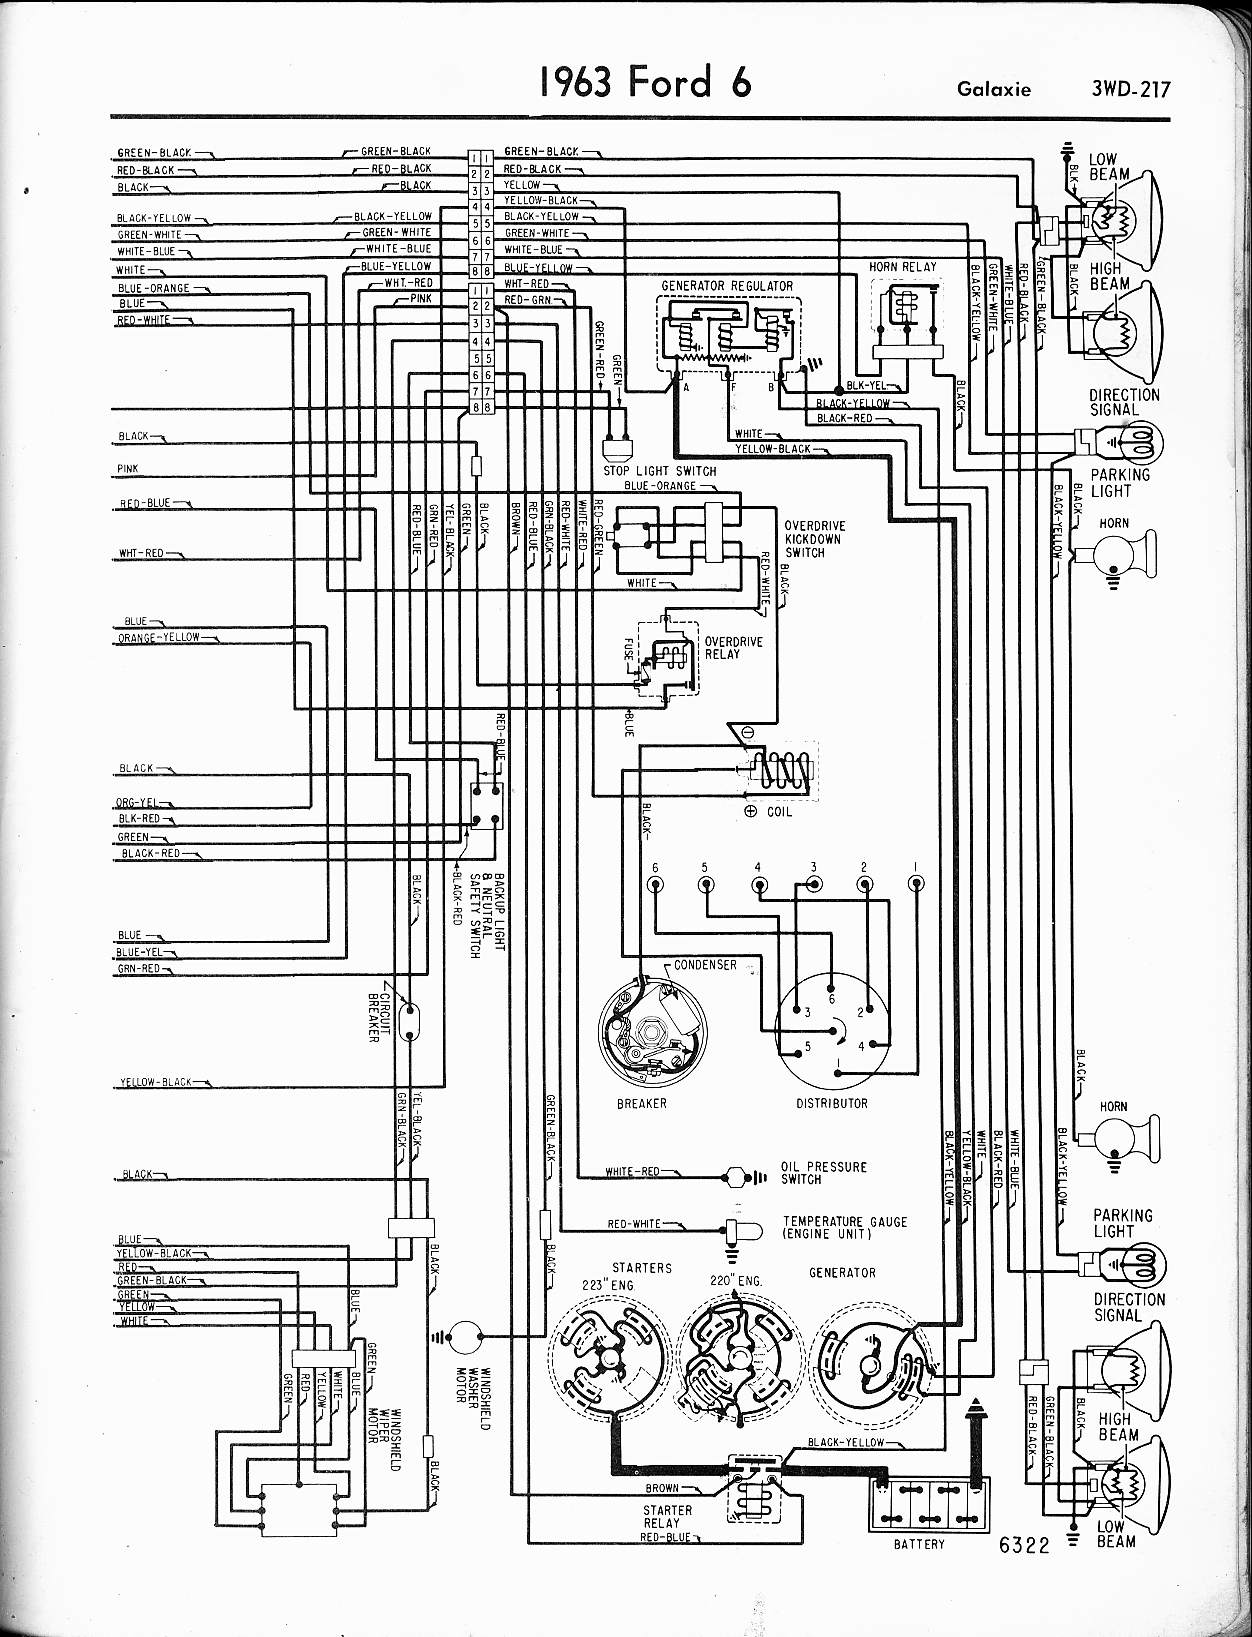 MWire5765 217?resize=665%2C869 62 galaxie underhood wiring diagram 62 wiring diagrams collection  at edmiracle.co